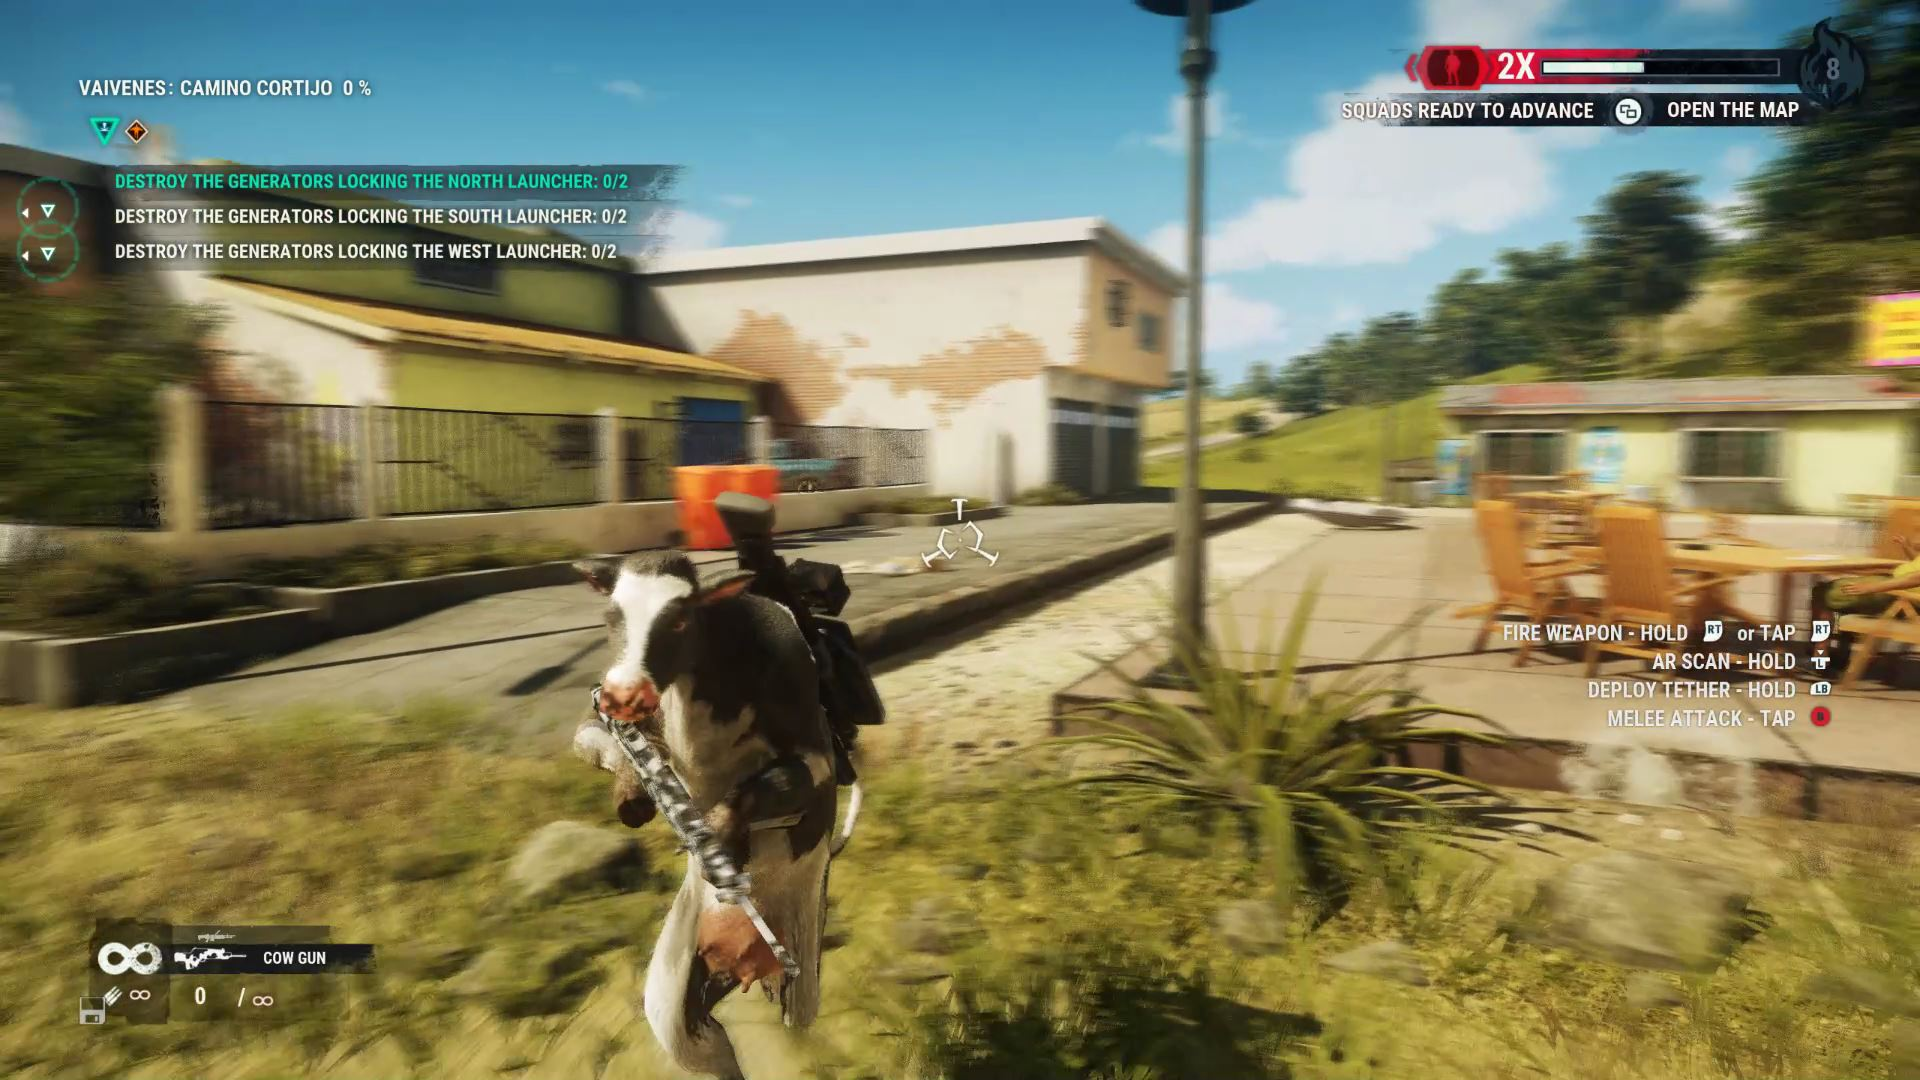 just cause 4 2018 12 07 21 45 09 02 mp4 000688707